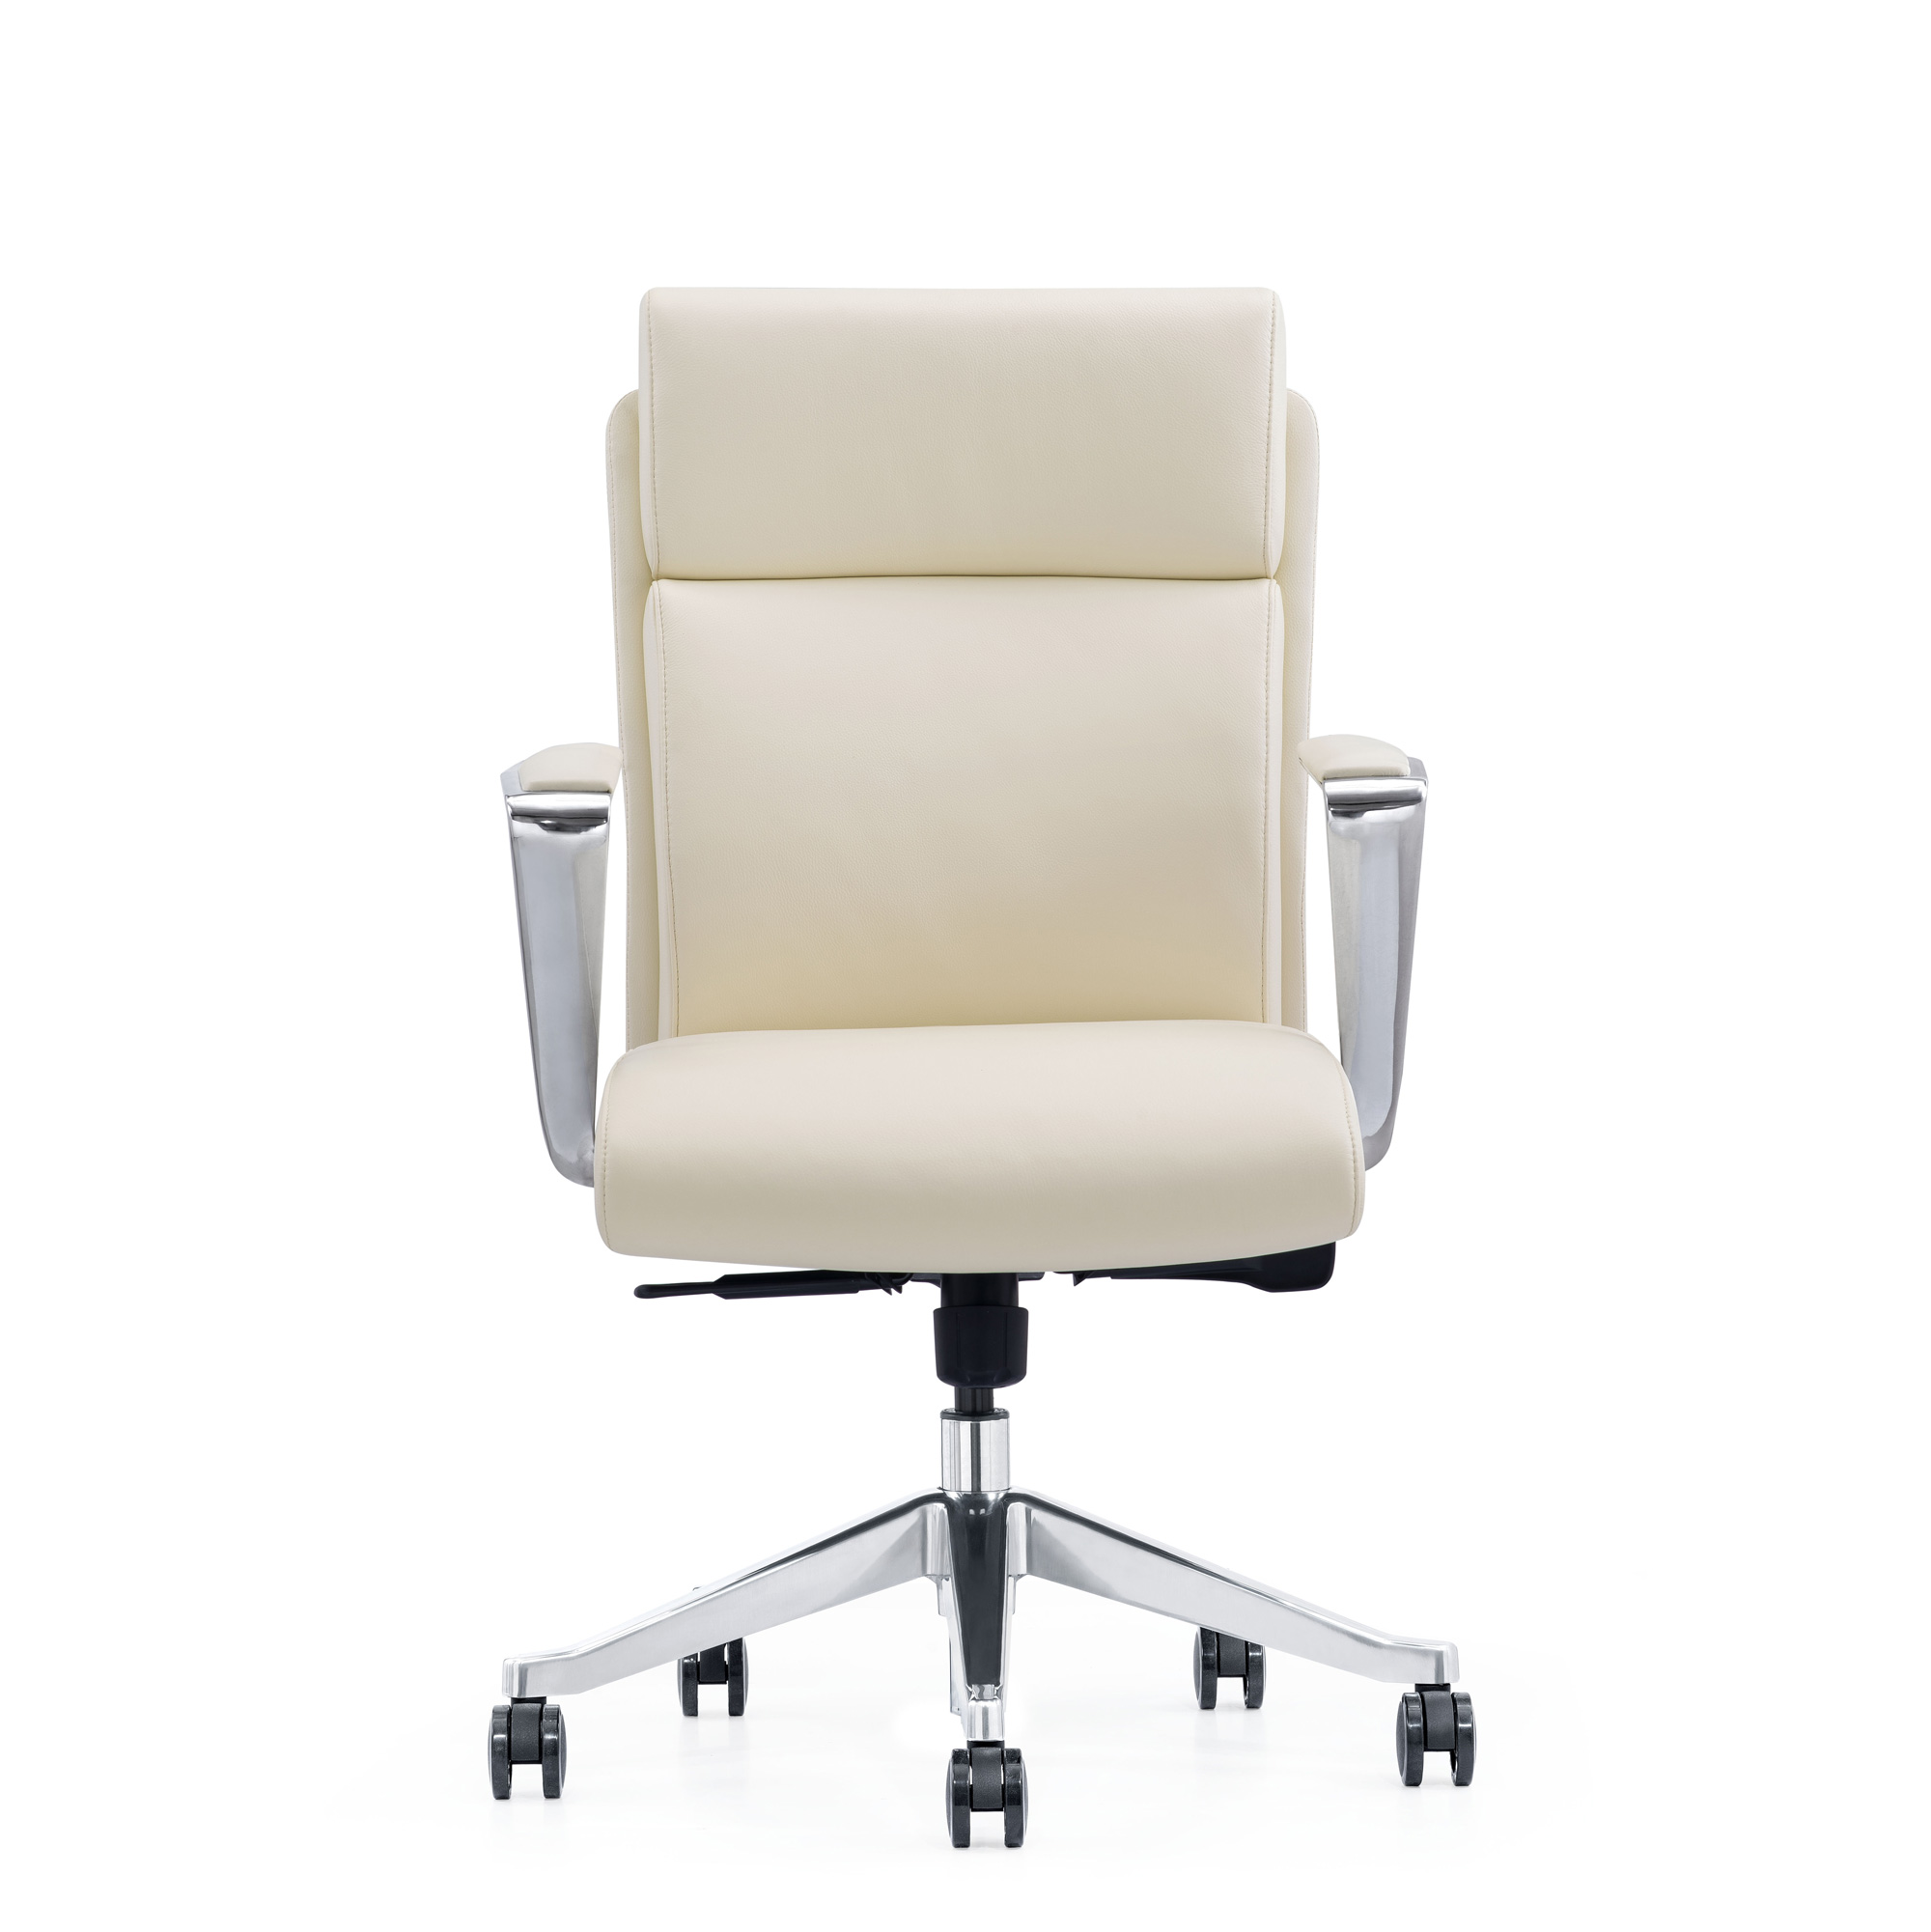 Off-White Leather Mid-Back Home Office Chair